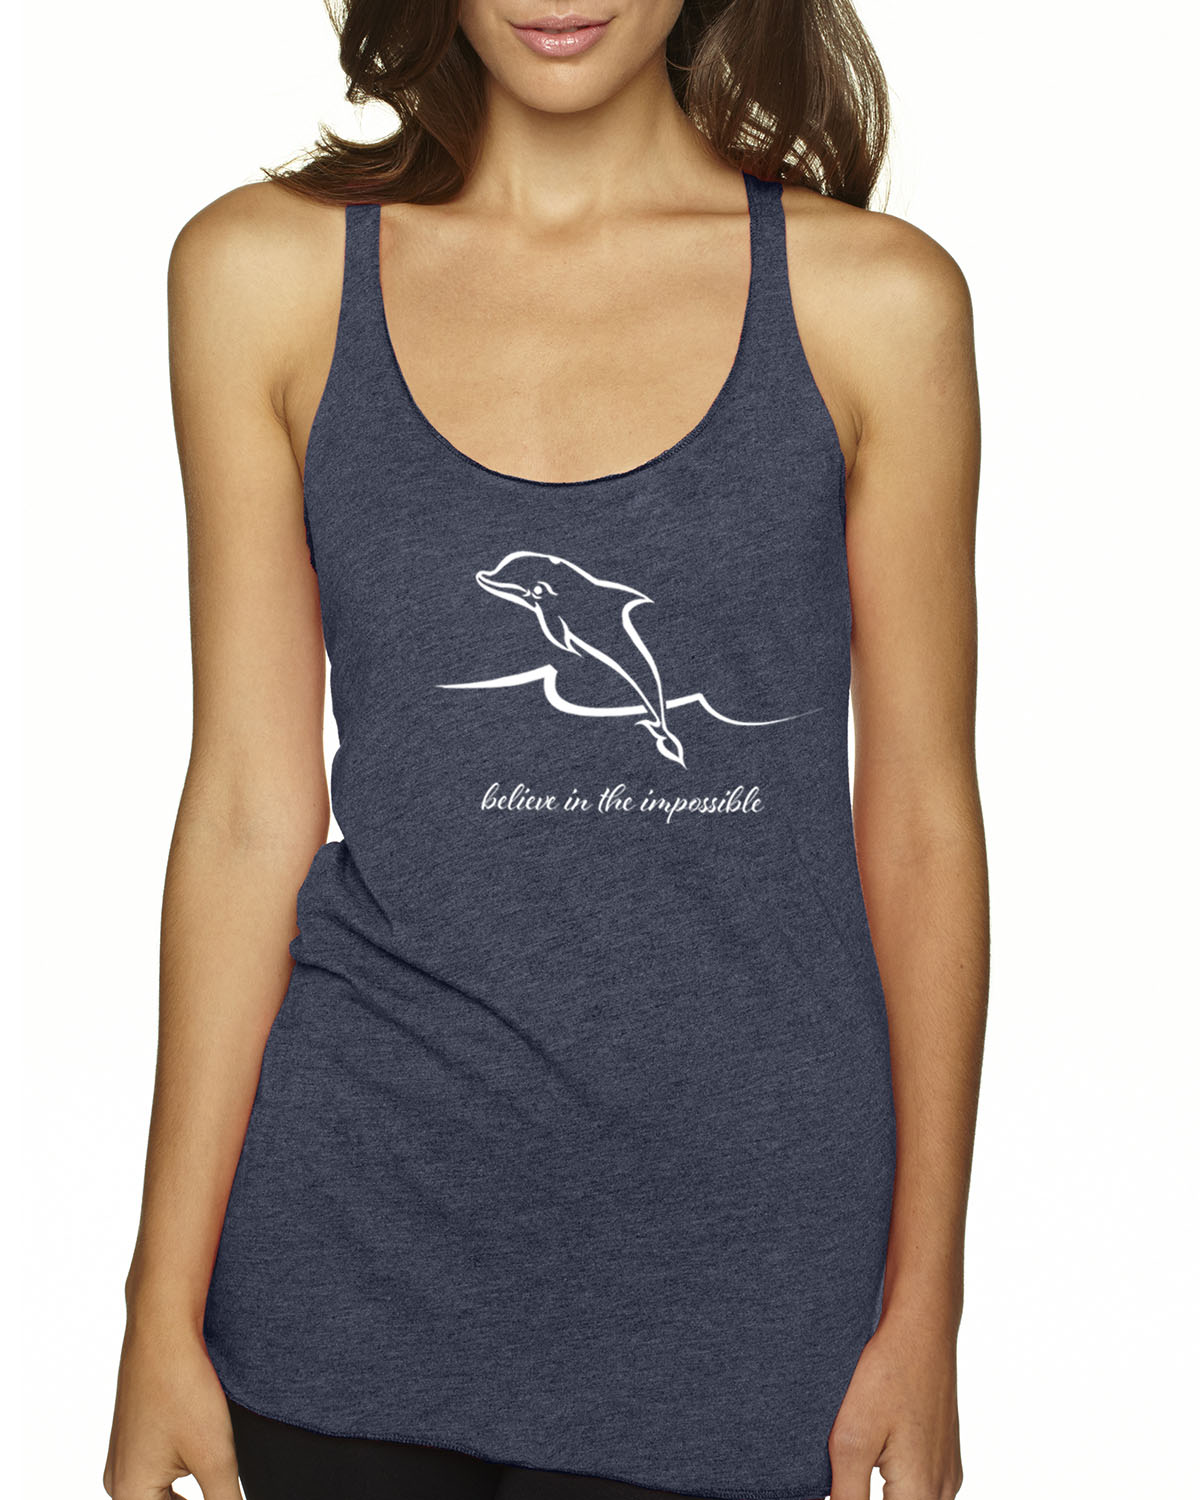 Women's Tri-blend Dolphin Tank Top (Indigo)